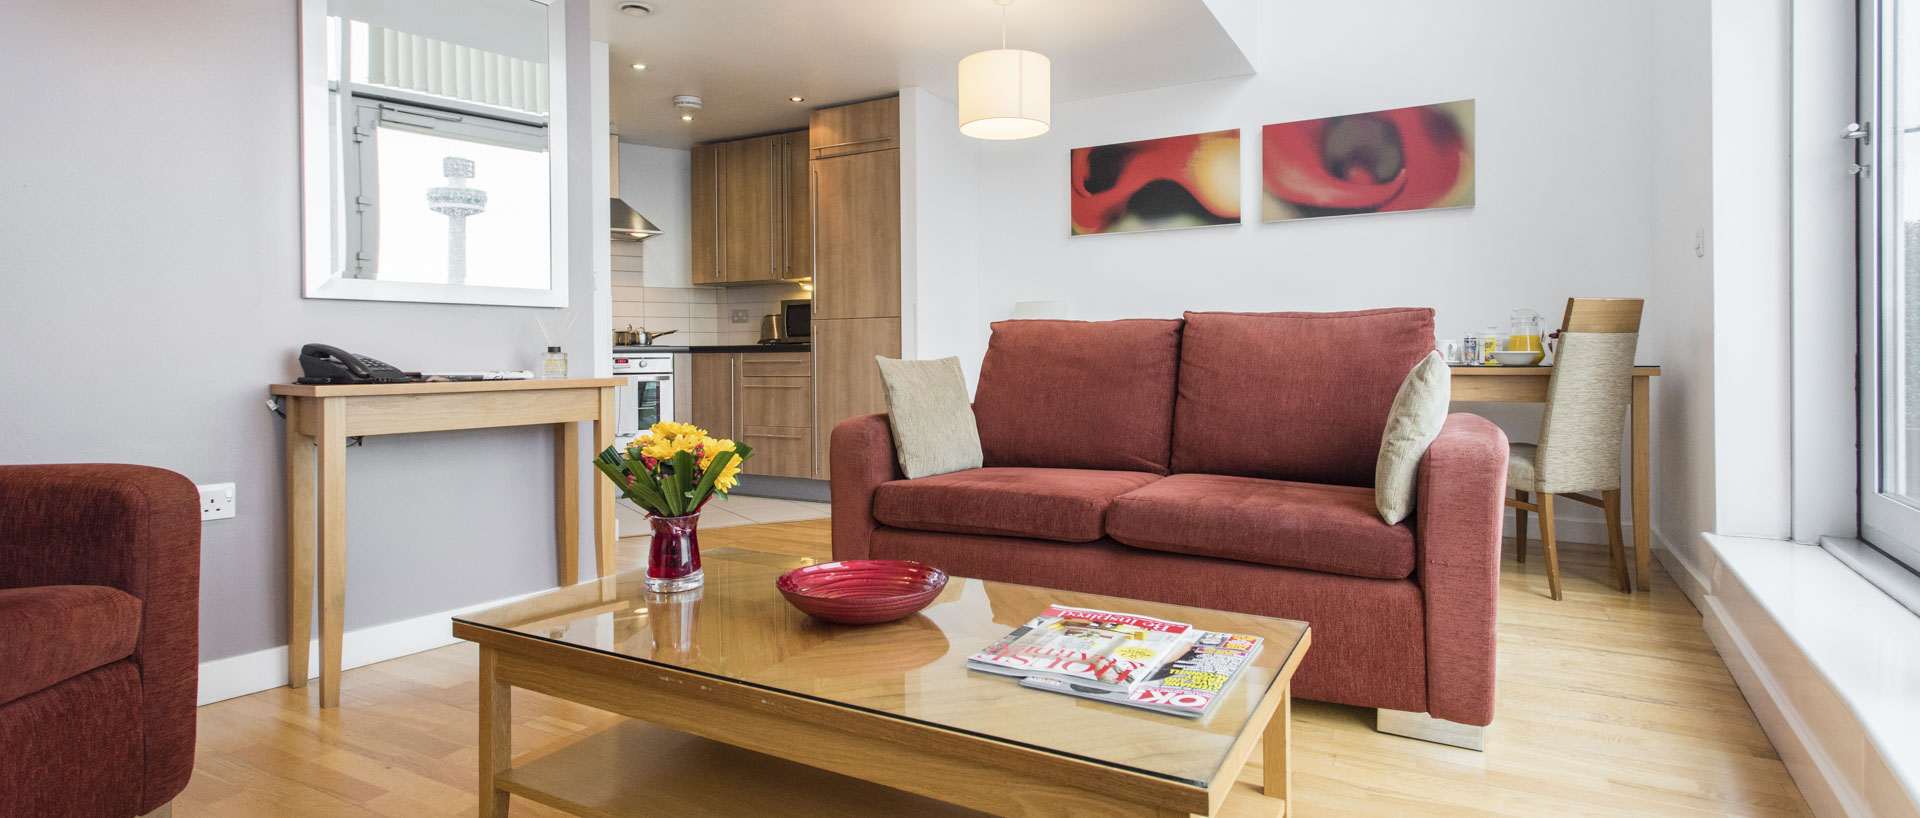 Large lounge sitting area in PREMIER SUITES Liverpool serviced apartments